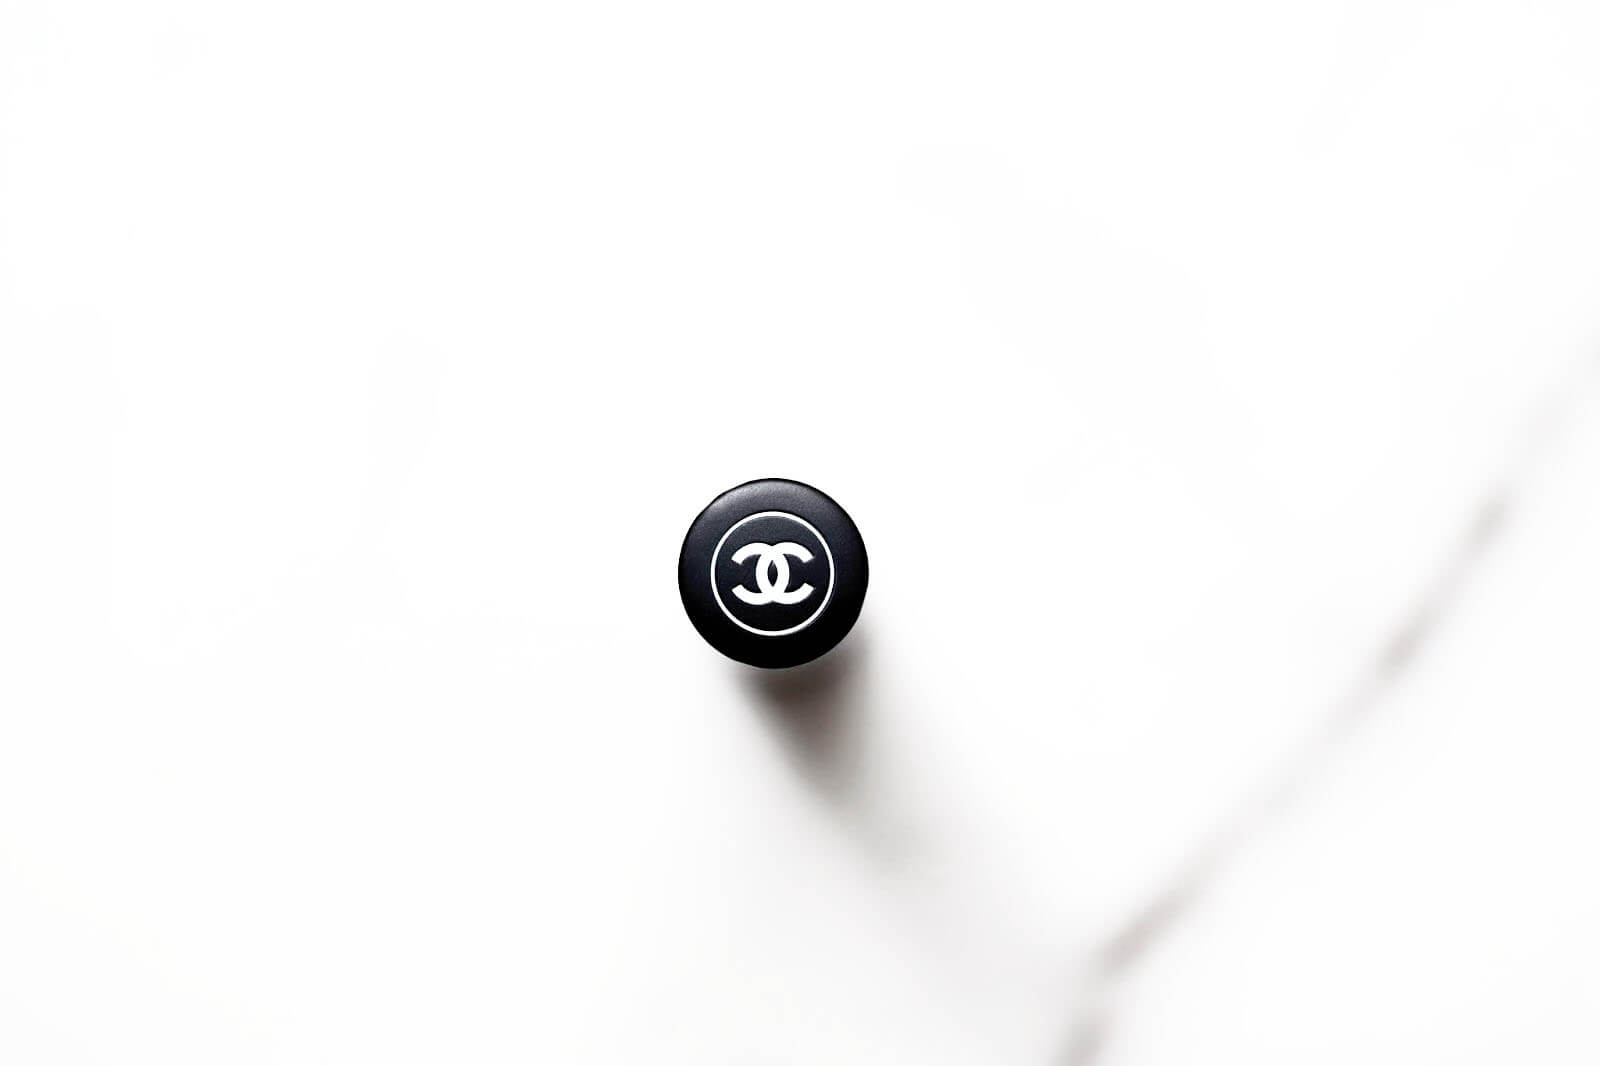 Chanel Mascara Le Volume Stretch avis